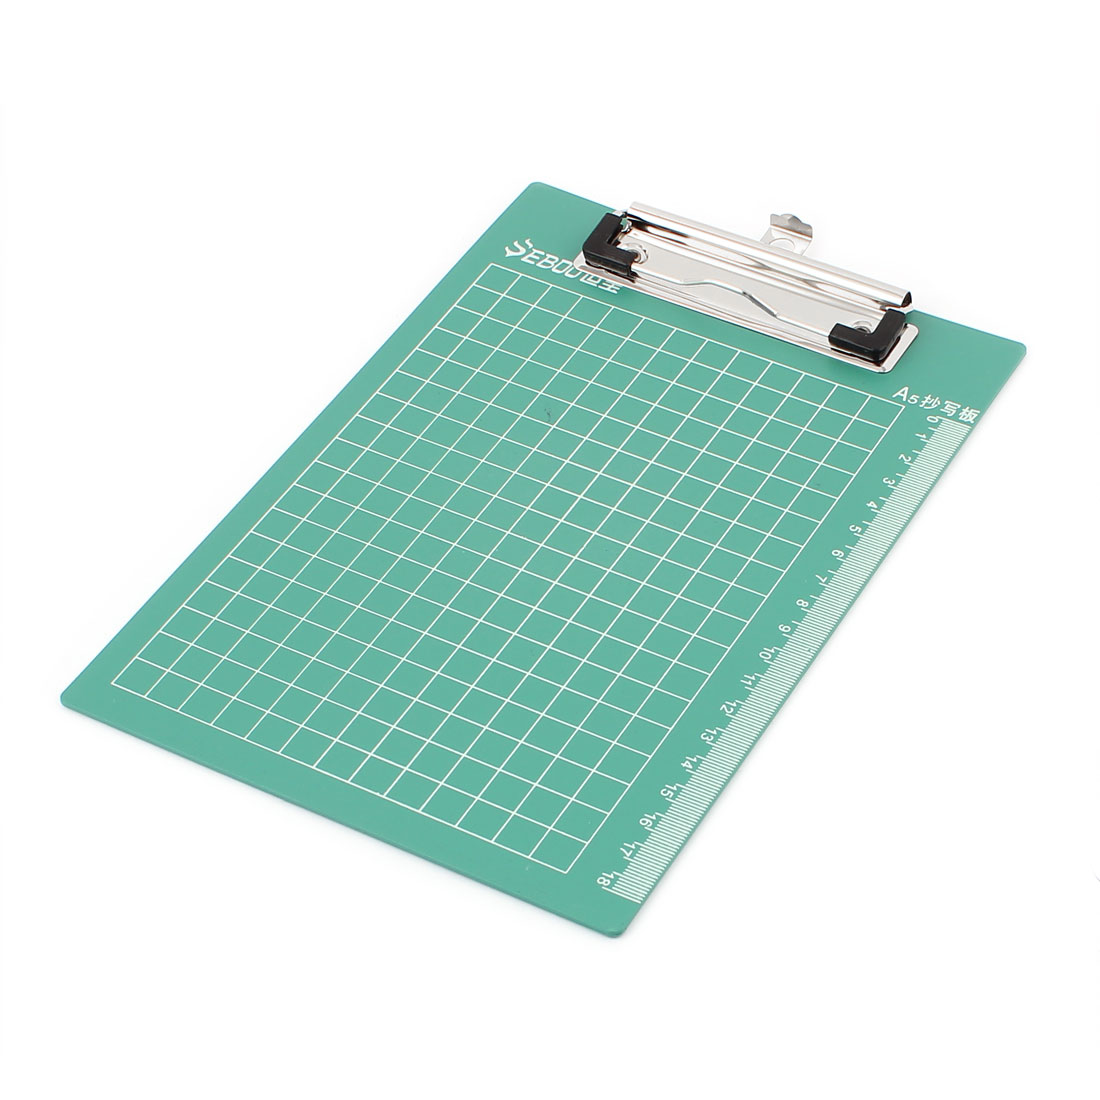 Unique Bargains Officemate Grid Printed Clipboard File Clip Board Paper Holder Green